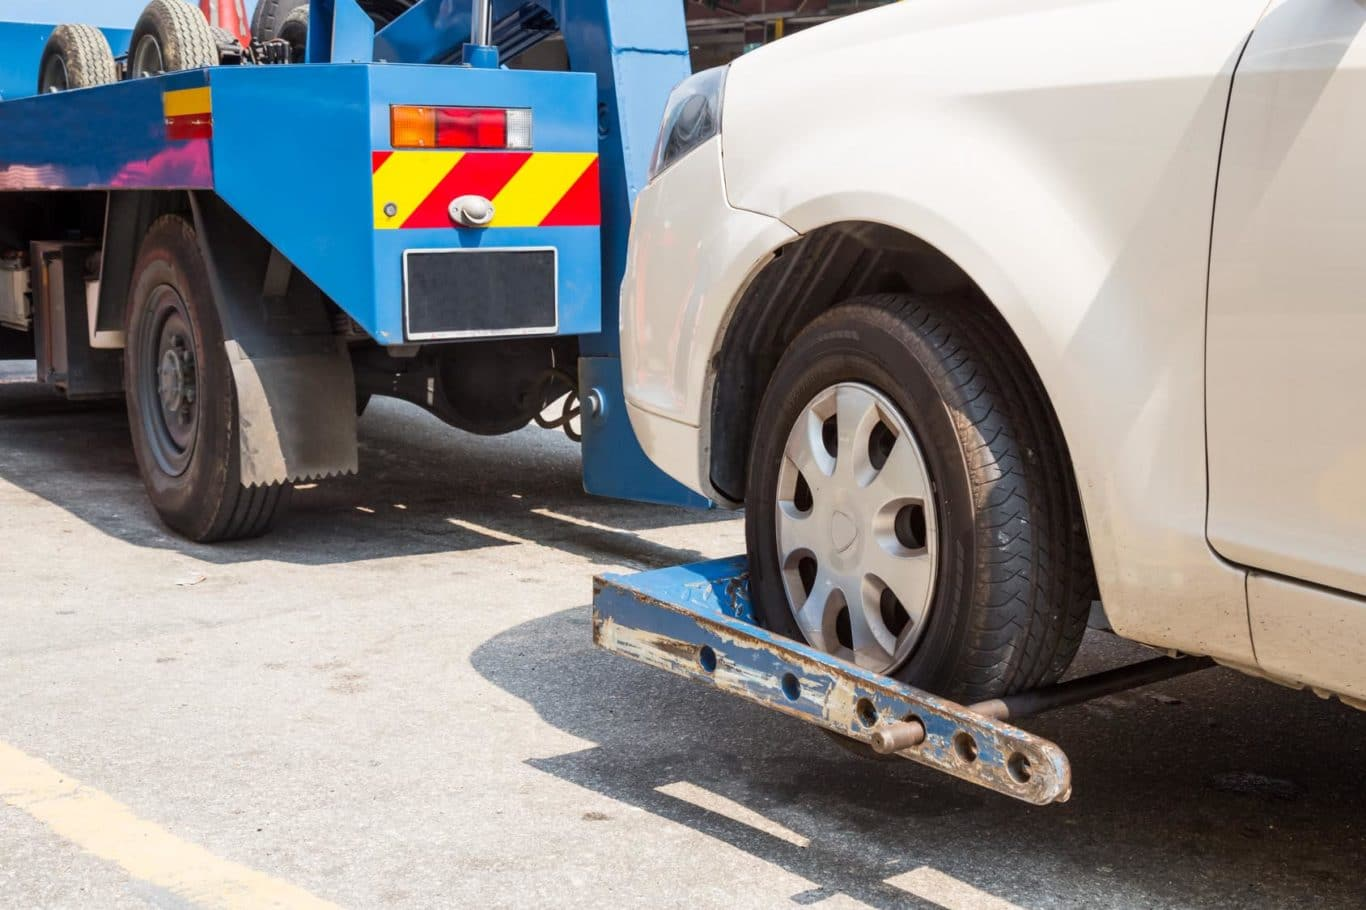 Wicklow expert Car Recovery services